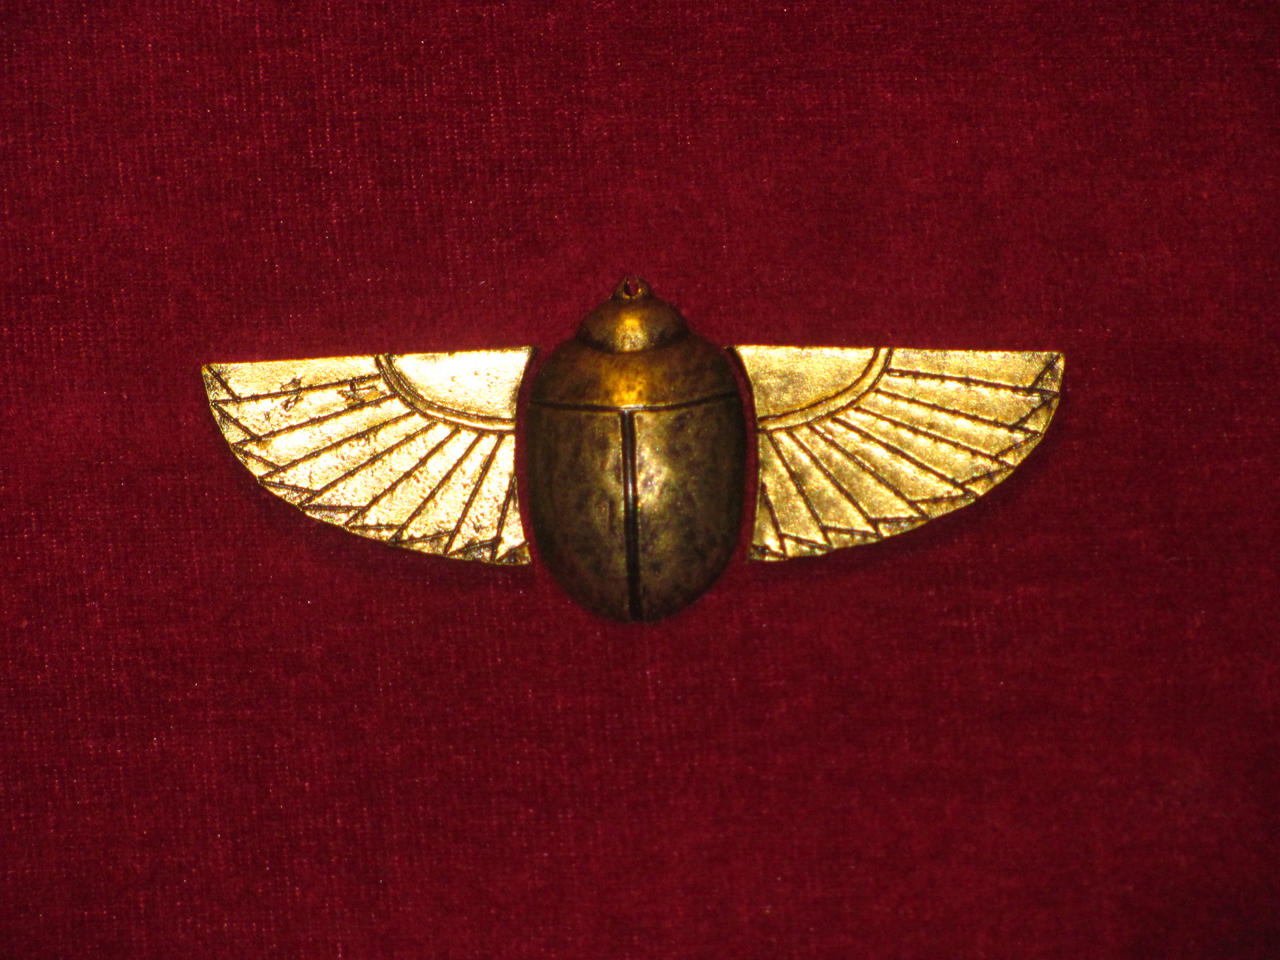 Golden Scarab, Egypt, c. 2250 BCE by VictorianSpectre